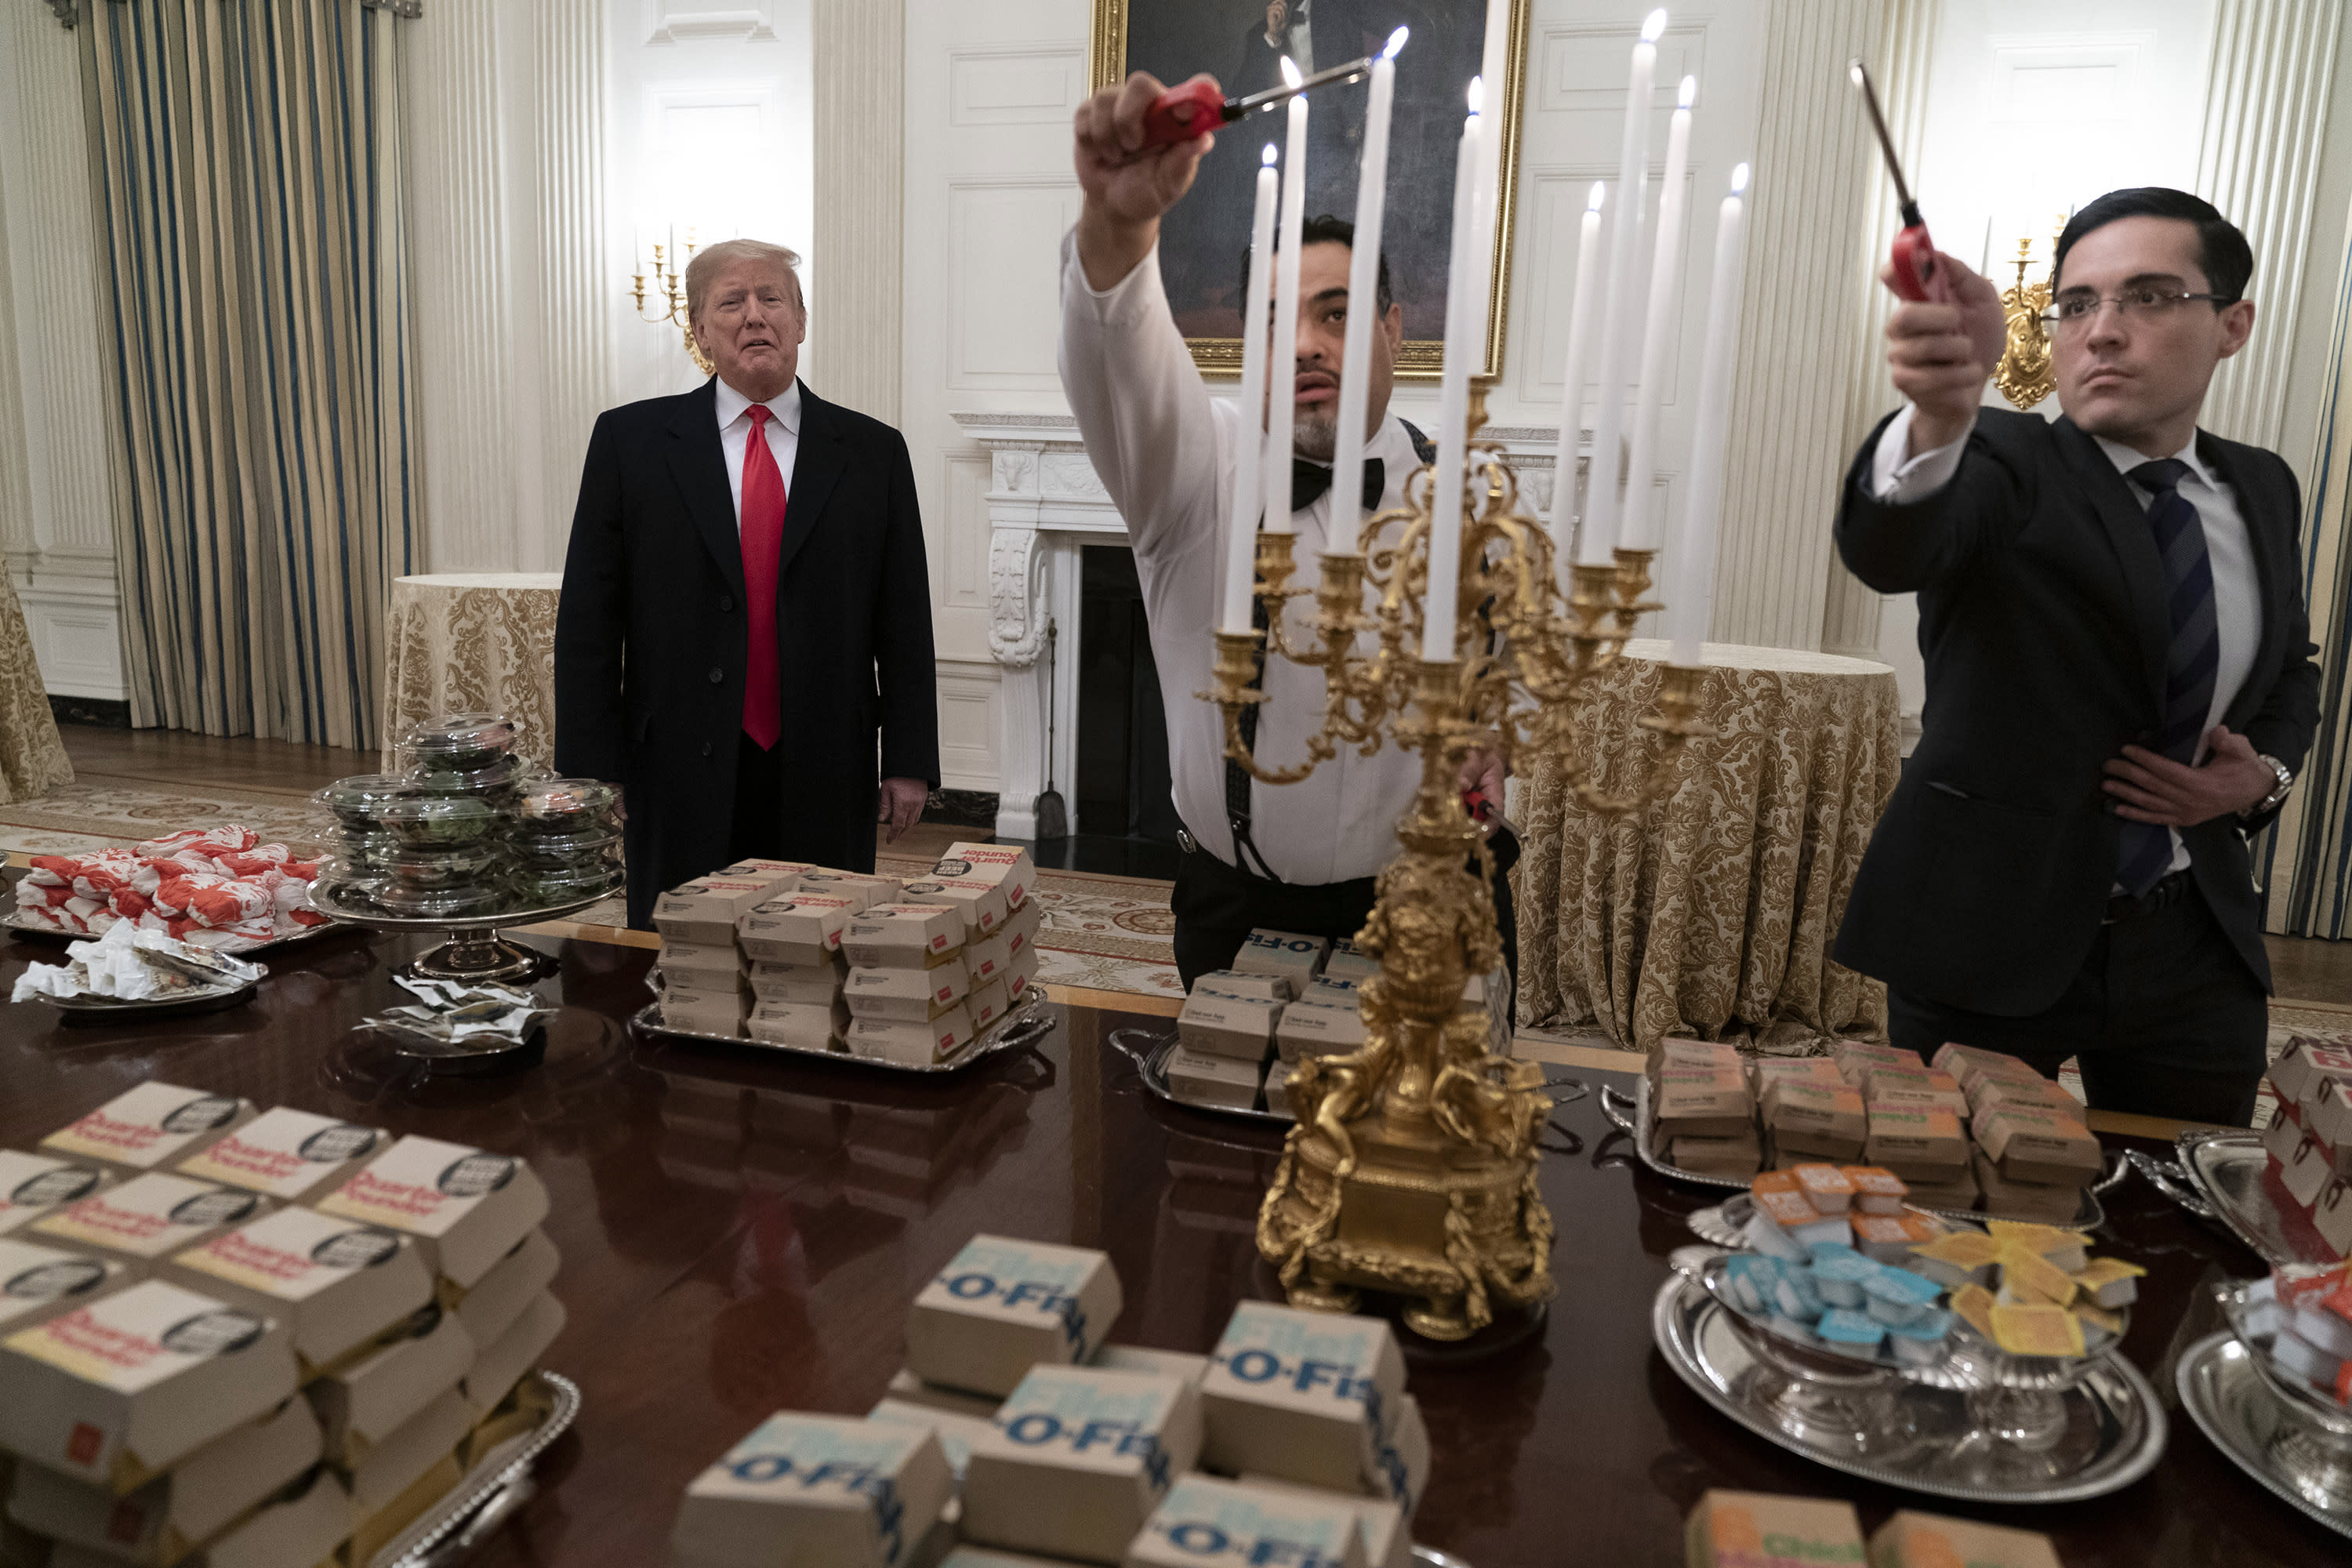 President Trump serves fast food to Clemson in bizarre White House visit